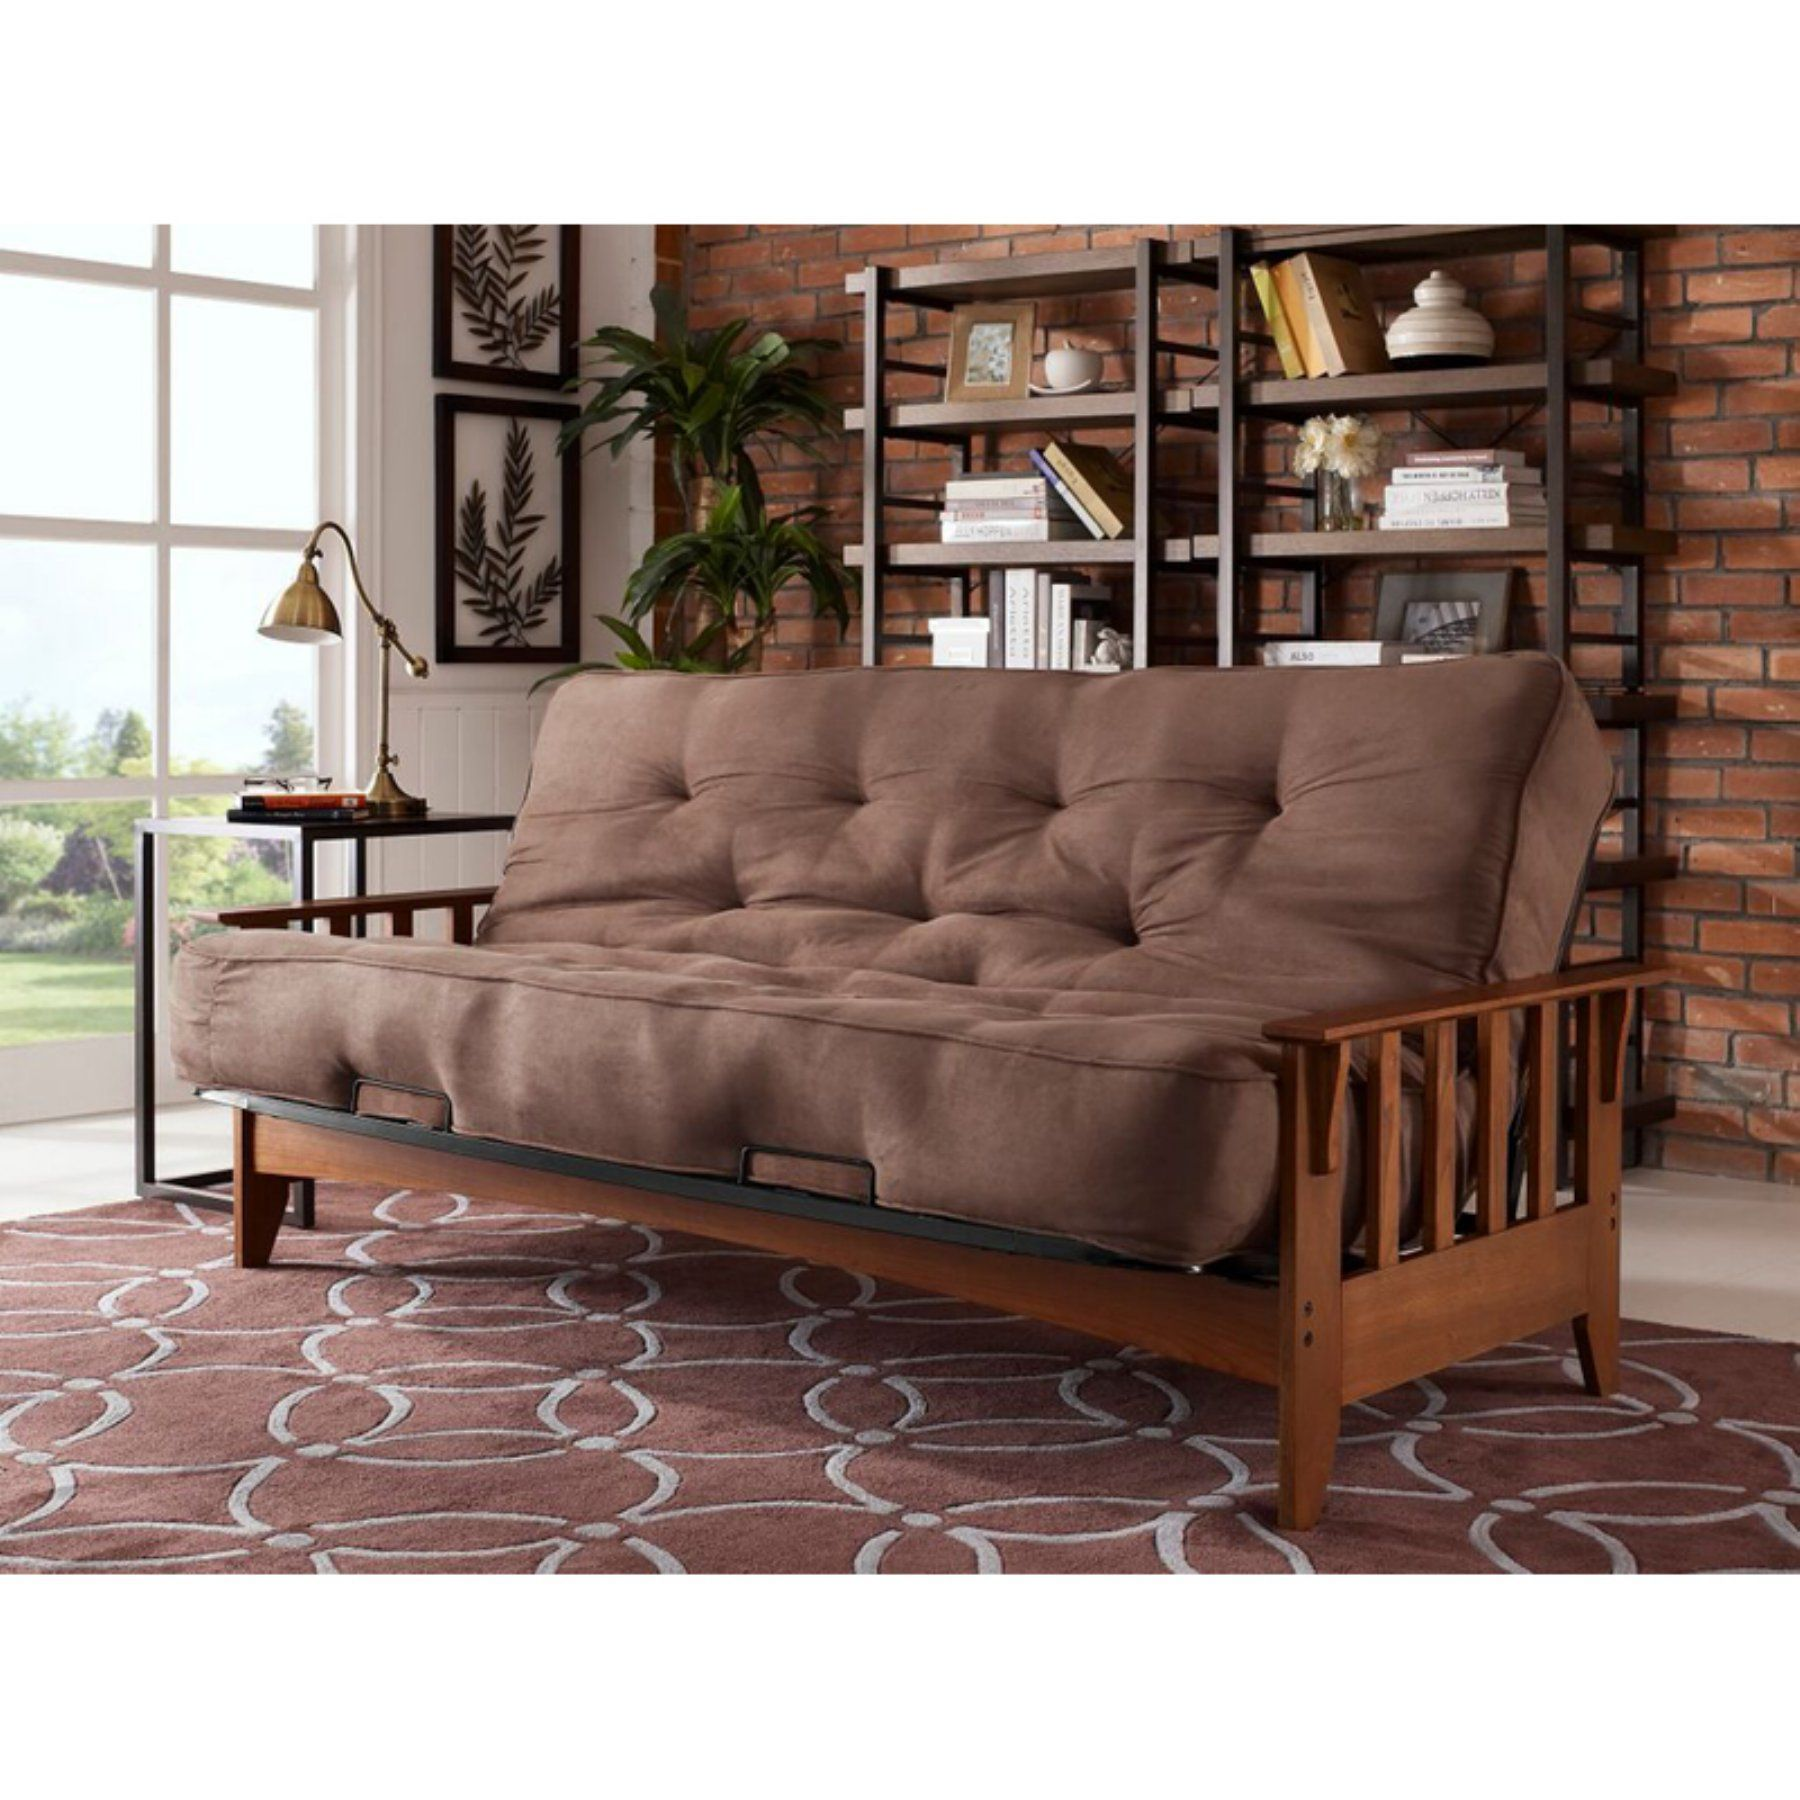 Simmons Seattle Futon Frame With 6 In Beauty Sleep Mattress Si Ex Sea Vo 1c